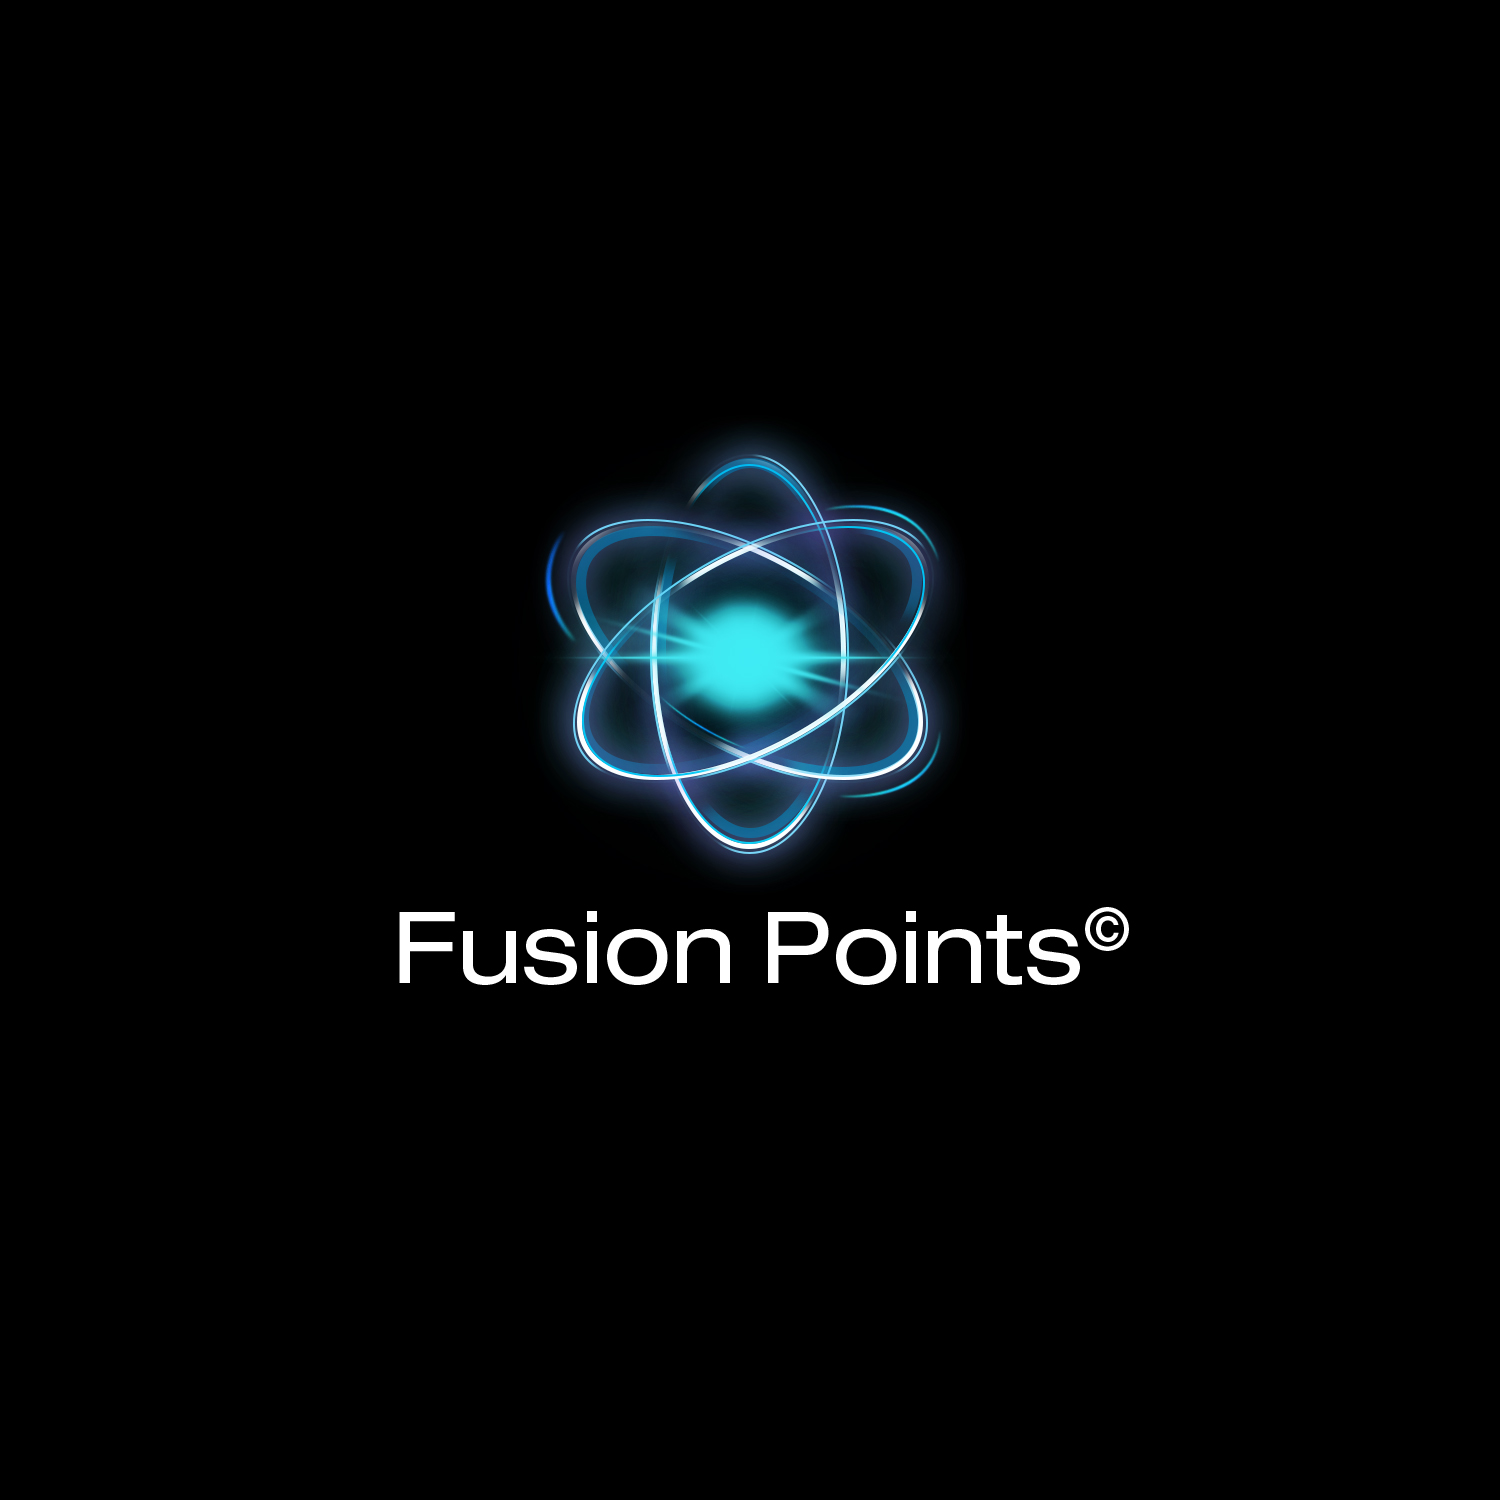 Your Value Proposition Creates Fusion Points™